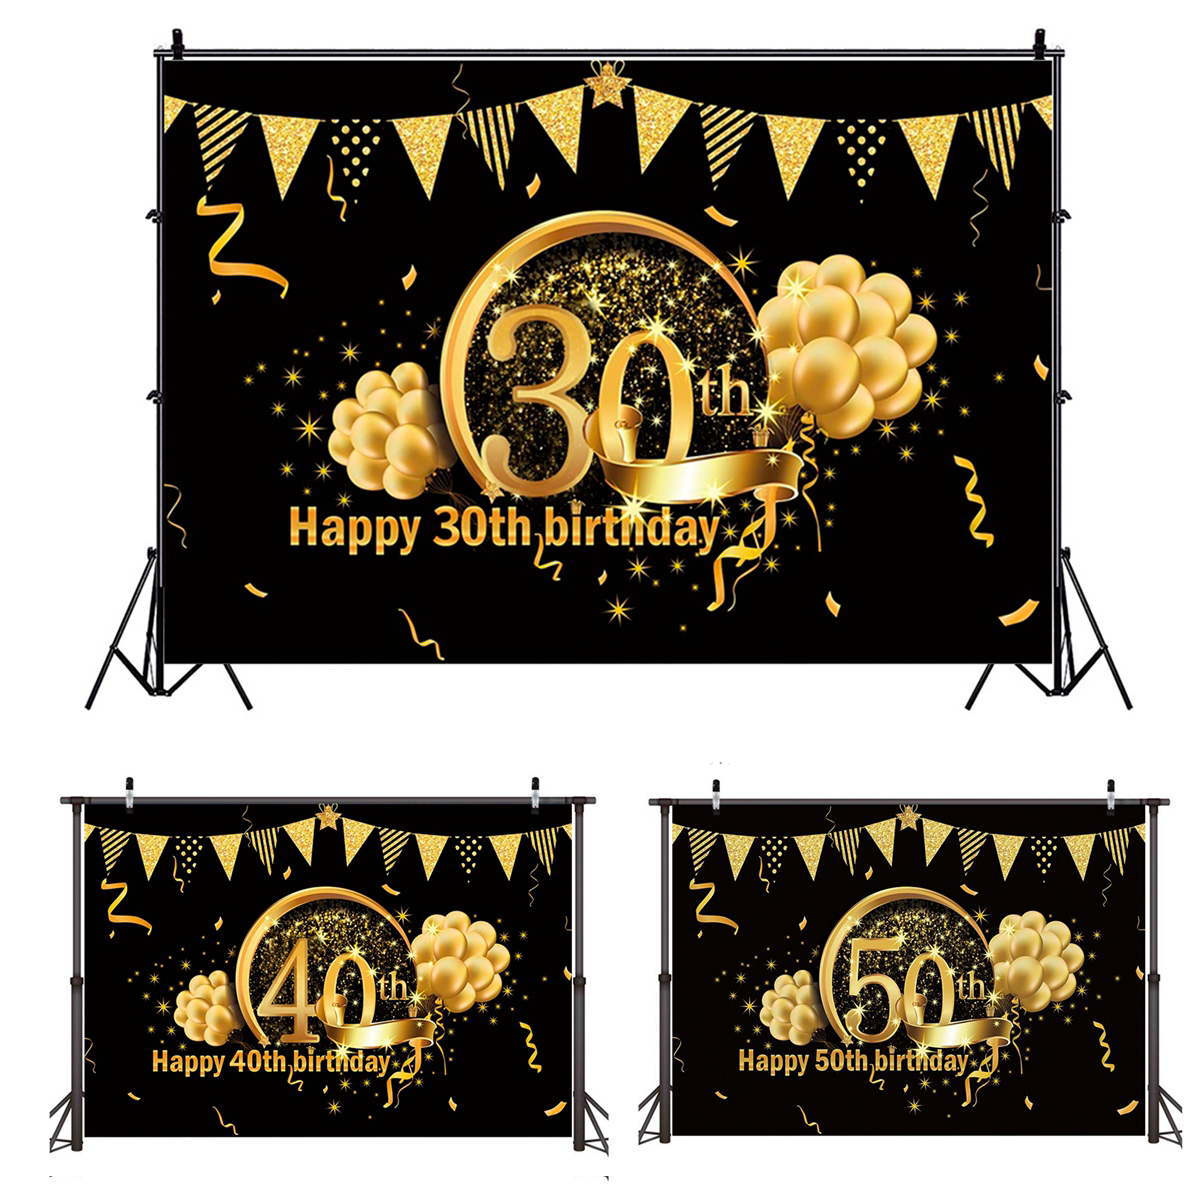 QIFU Birthday Background Decor 30 40 50 Birthday Party Decor Adult 30th 40th 50th Birthday Party Supplies 30 Years Anniversary